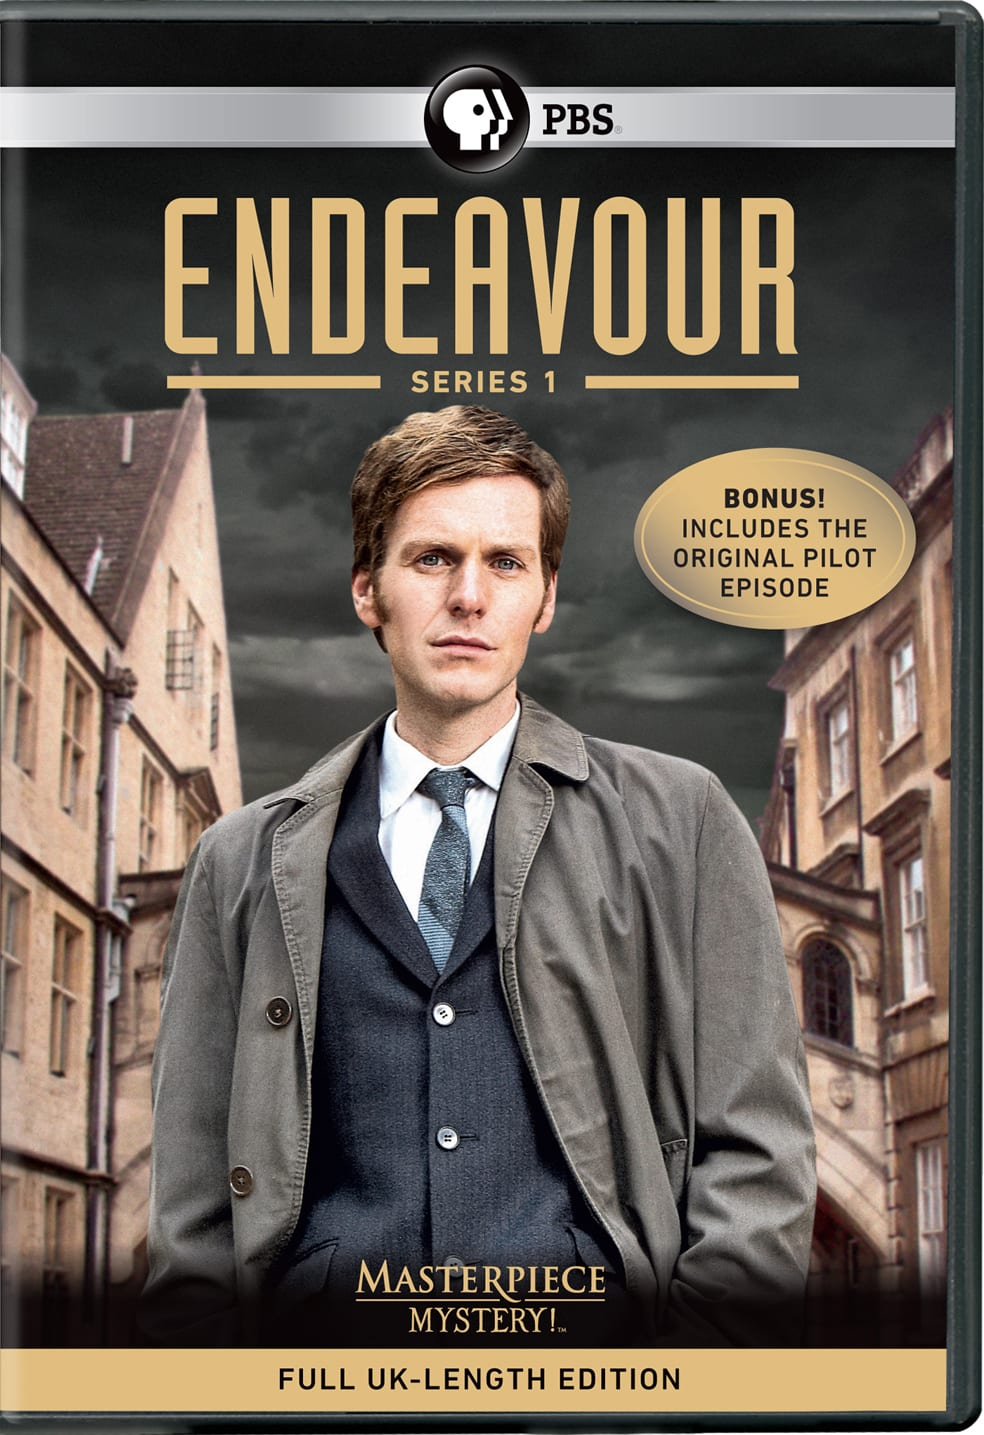 Masterpiece Mystery!: Endeavour - Series 1 [DVD]